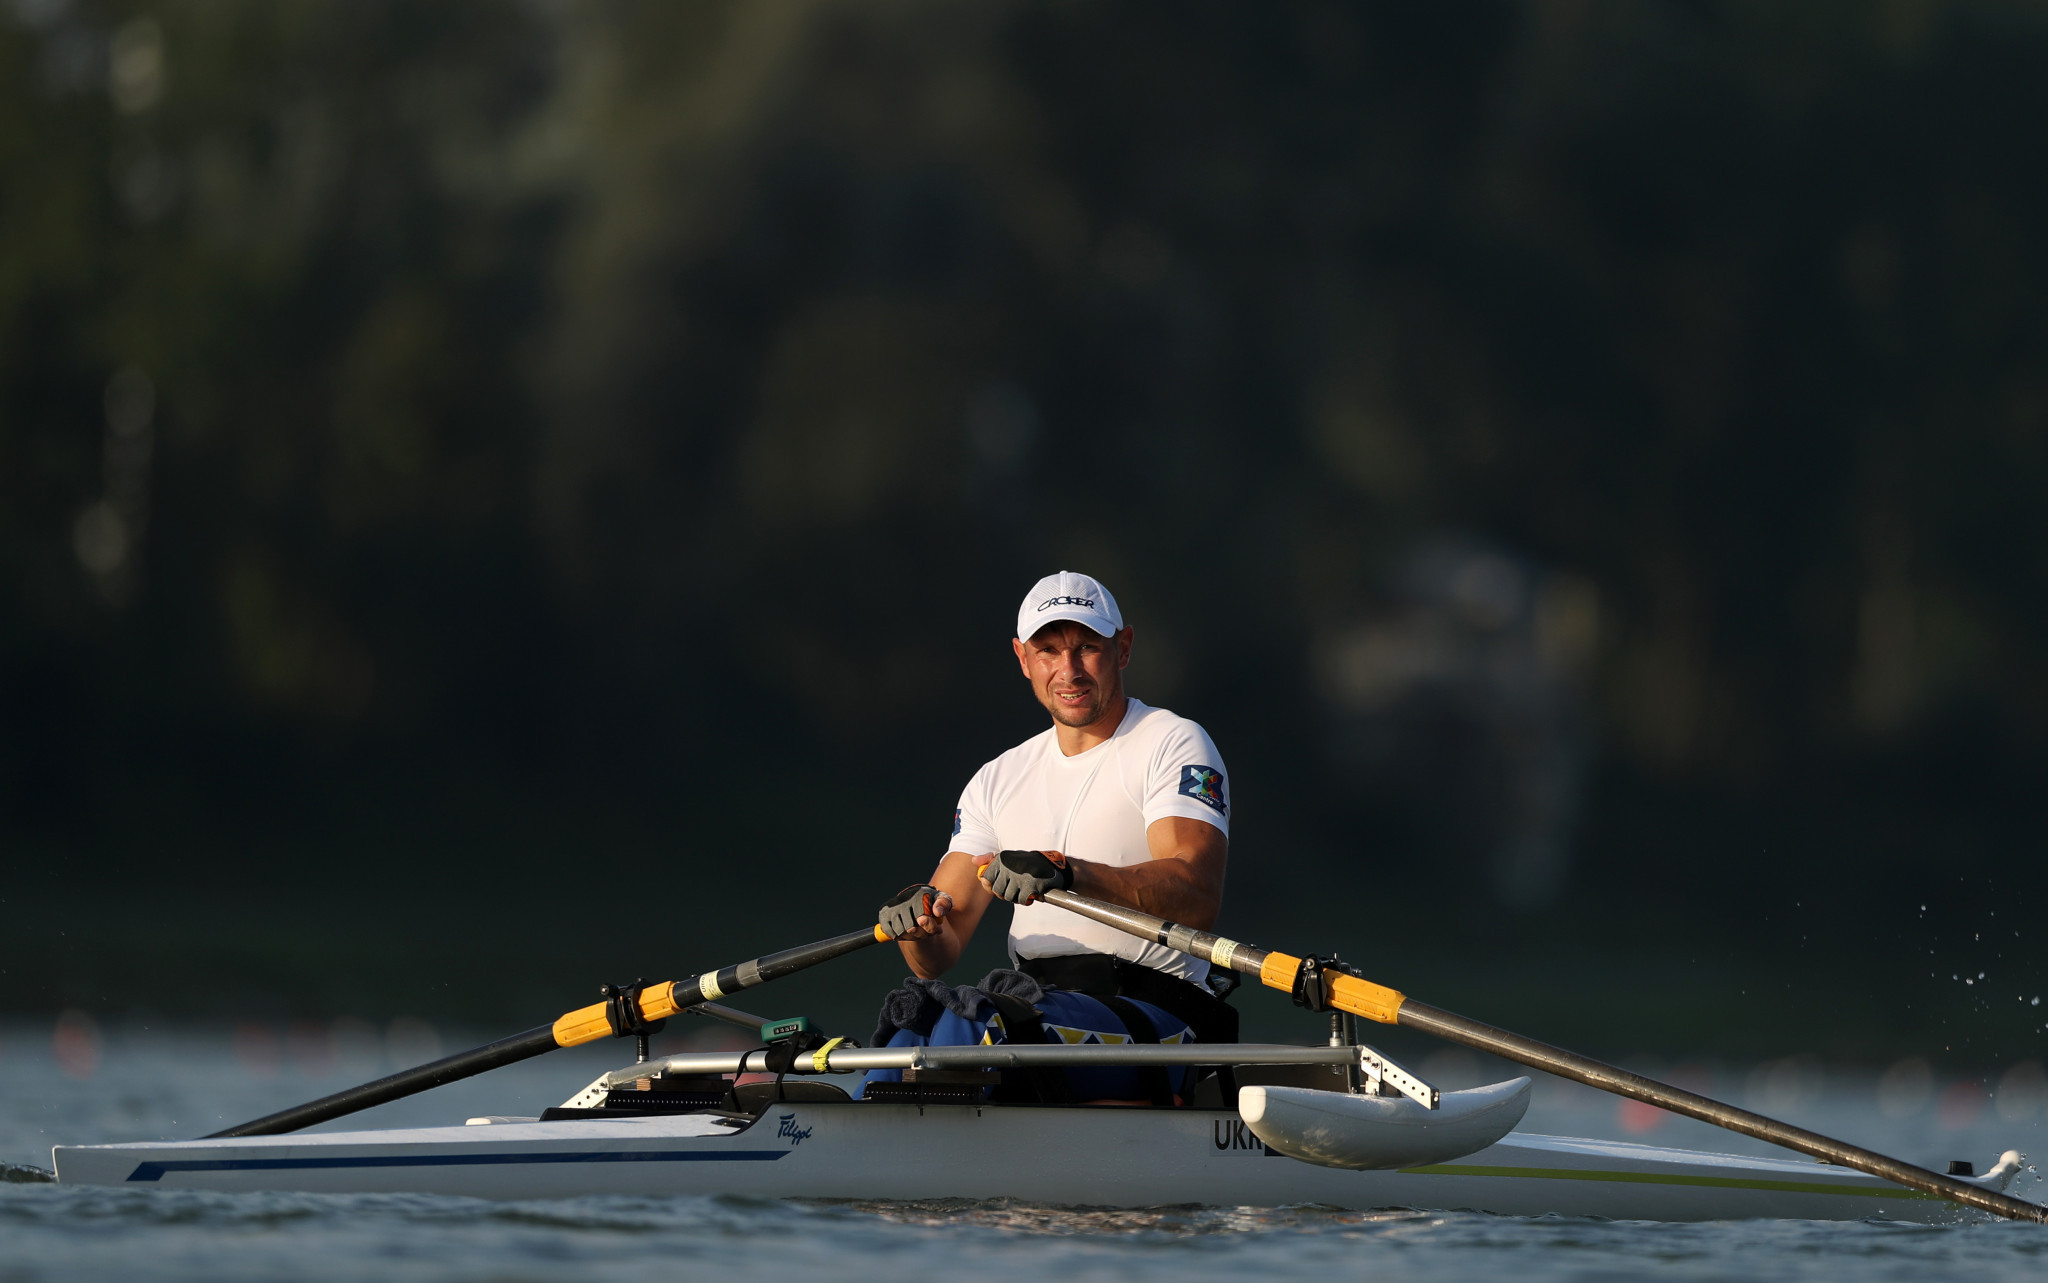 Roman Polianskyi will aim to secure victory in the men's single sculls PR1 competition ©Getty Images